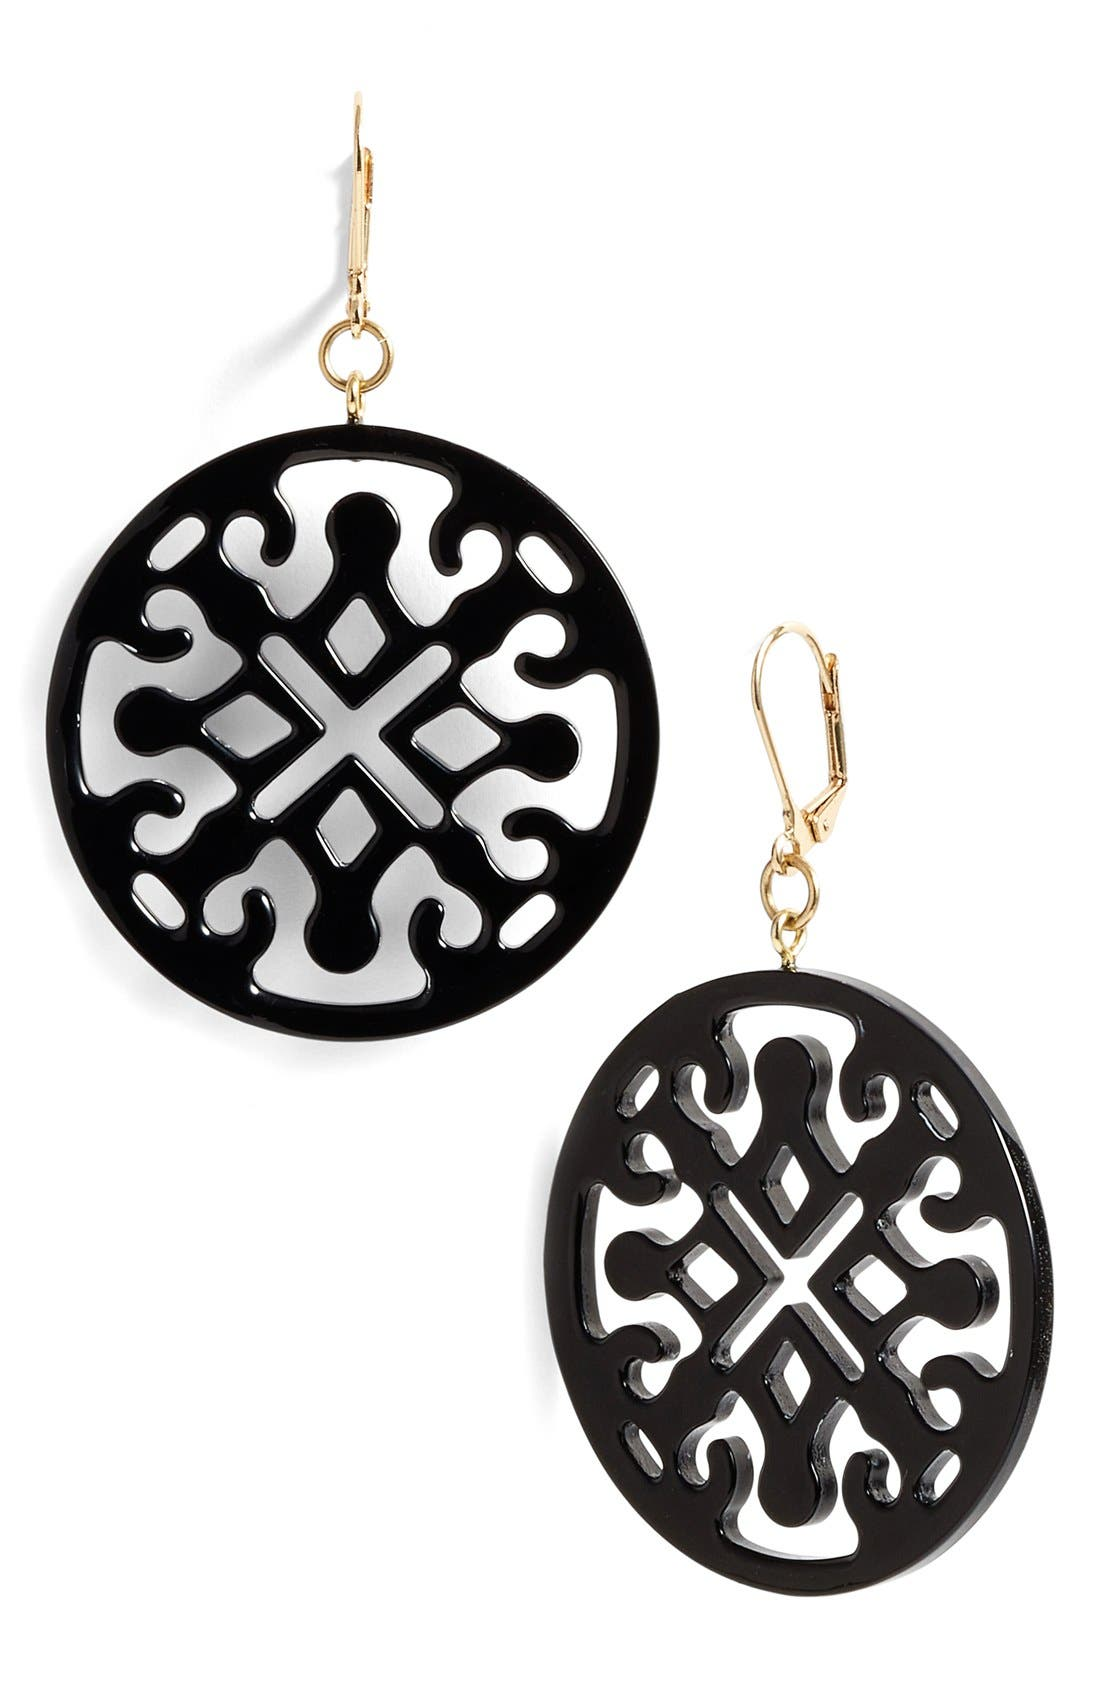 Medallion Filigree Drop Earrings,                         Main,                         color, 001